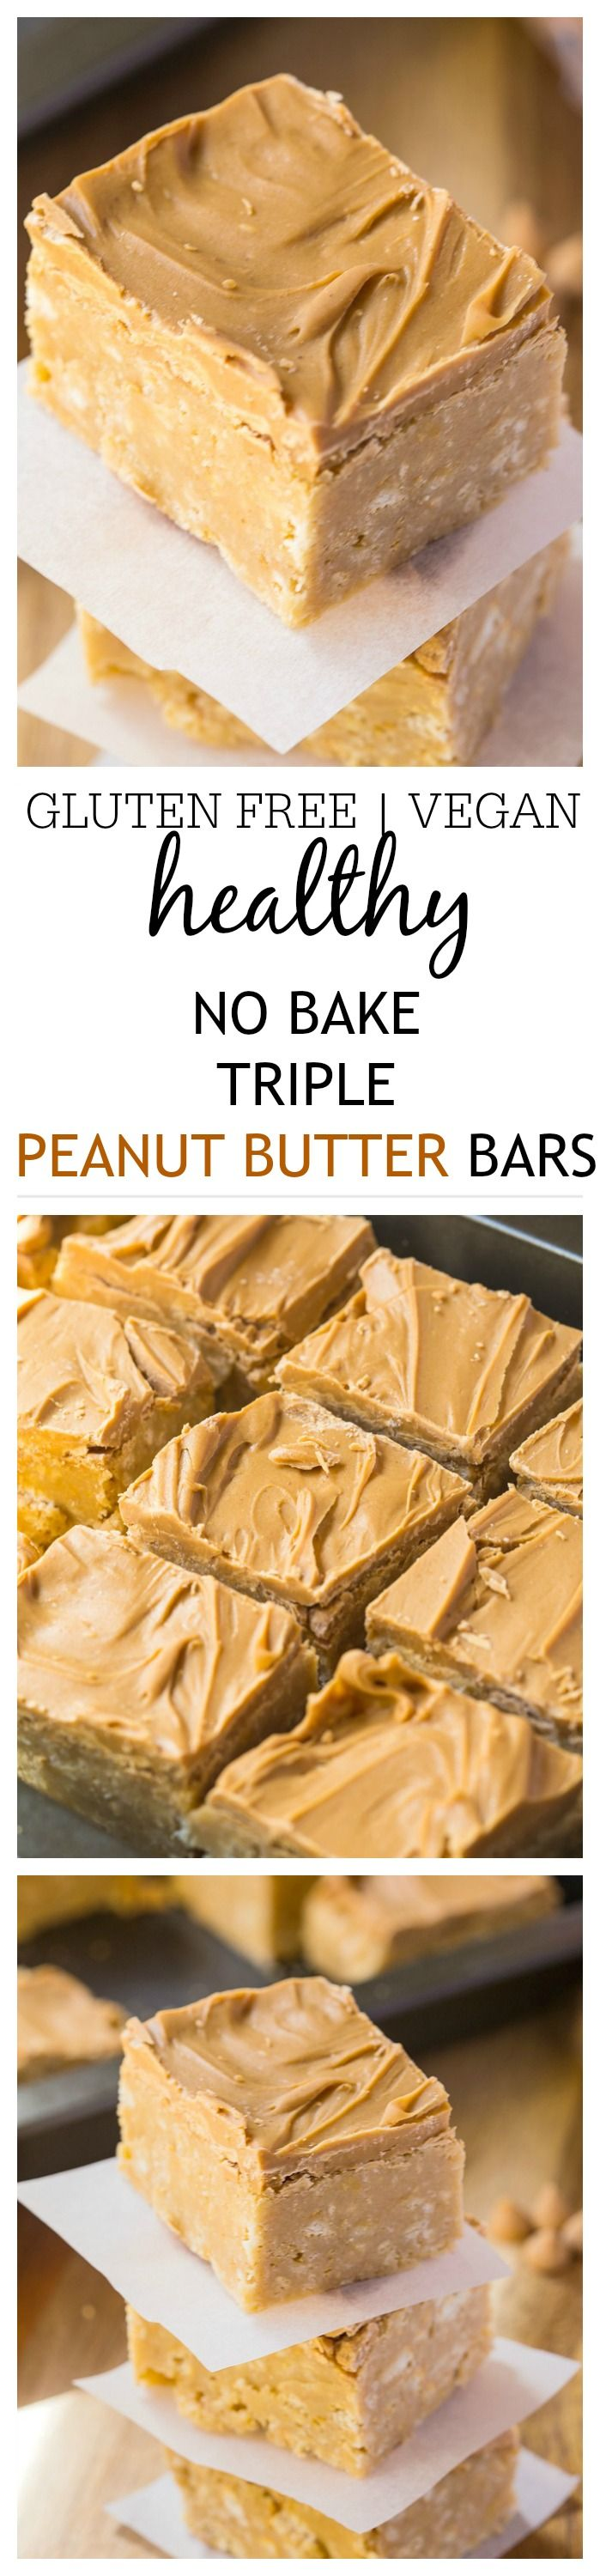 These healthy no bake triple peanut butter bars are the perfect treat or dessert for any peanut butter lover out there- Easy, no baking and impressive! {vegan + gluten free}